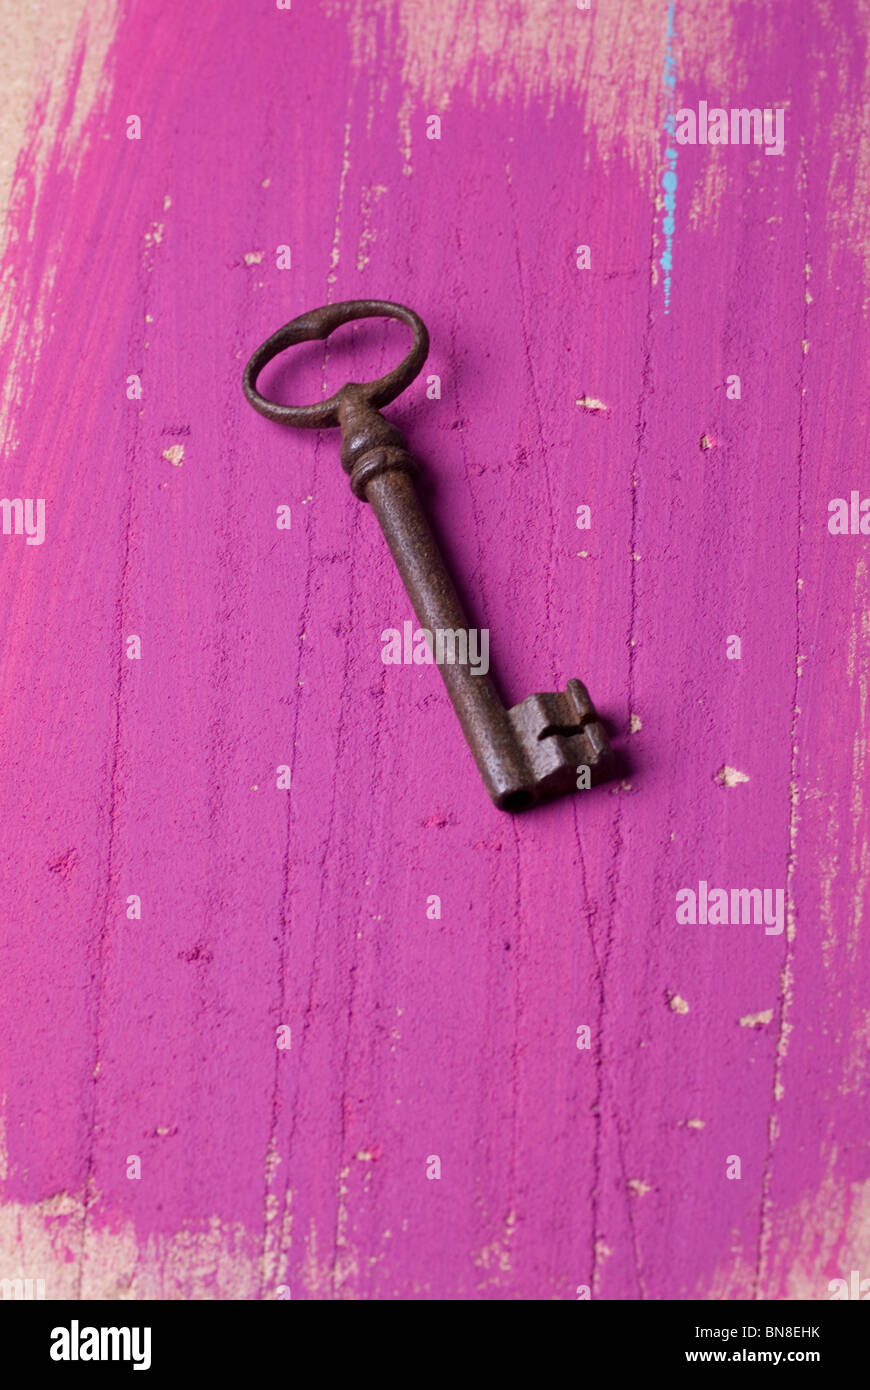 Old rusty key - Stock Image